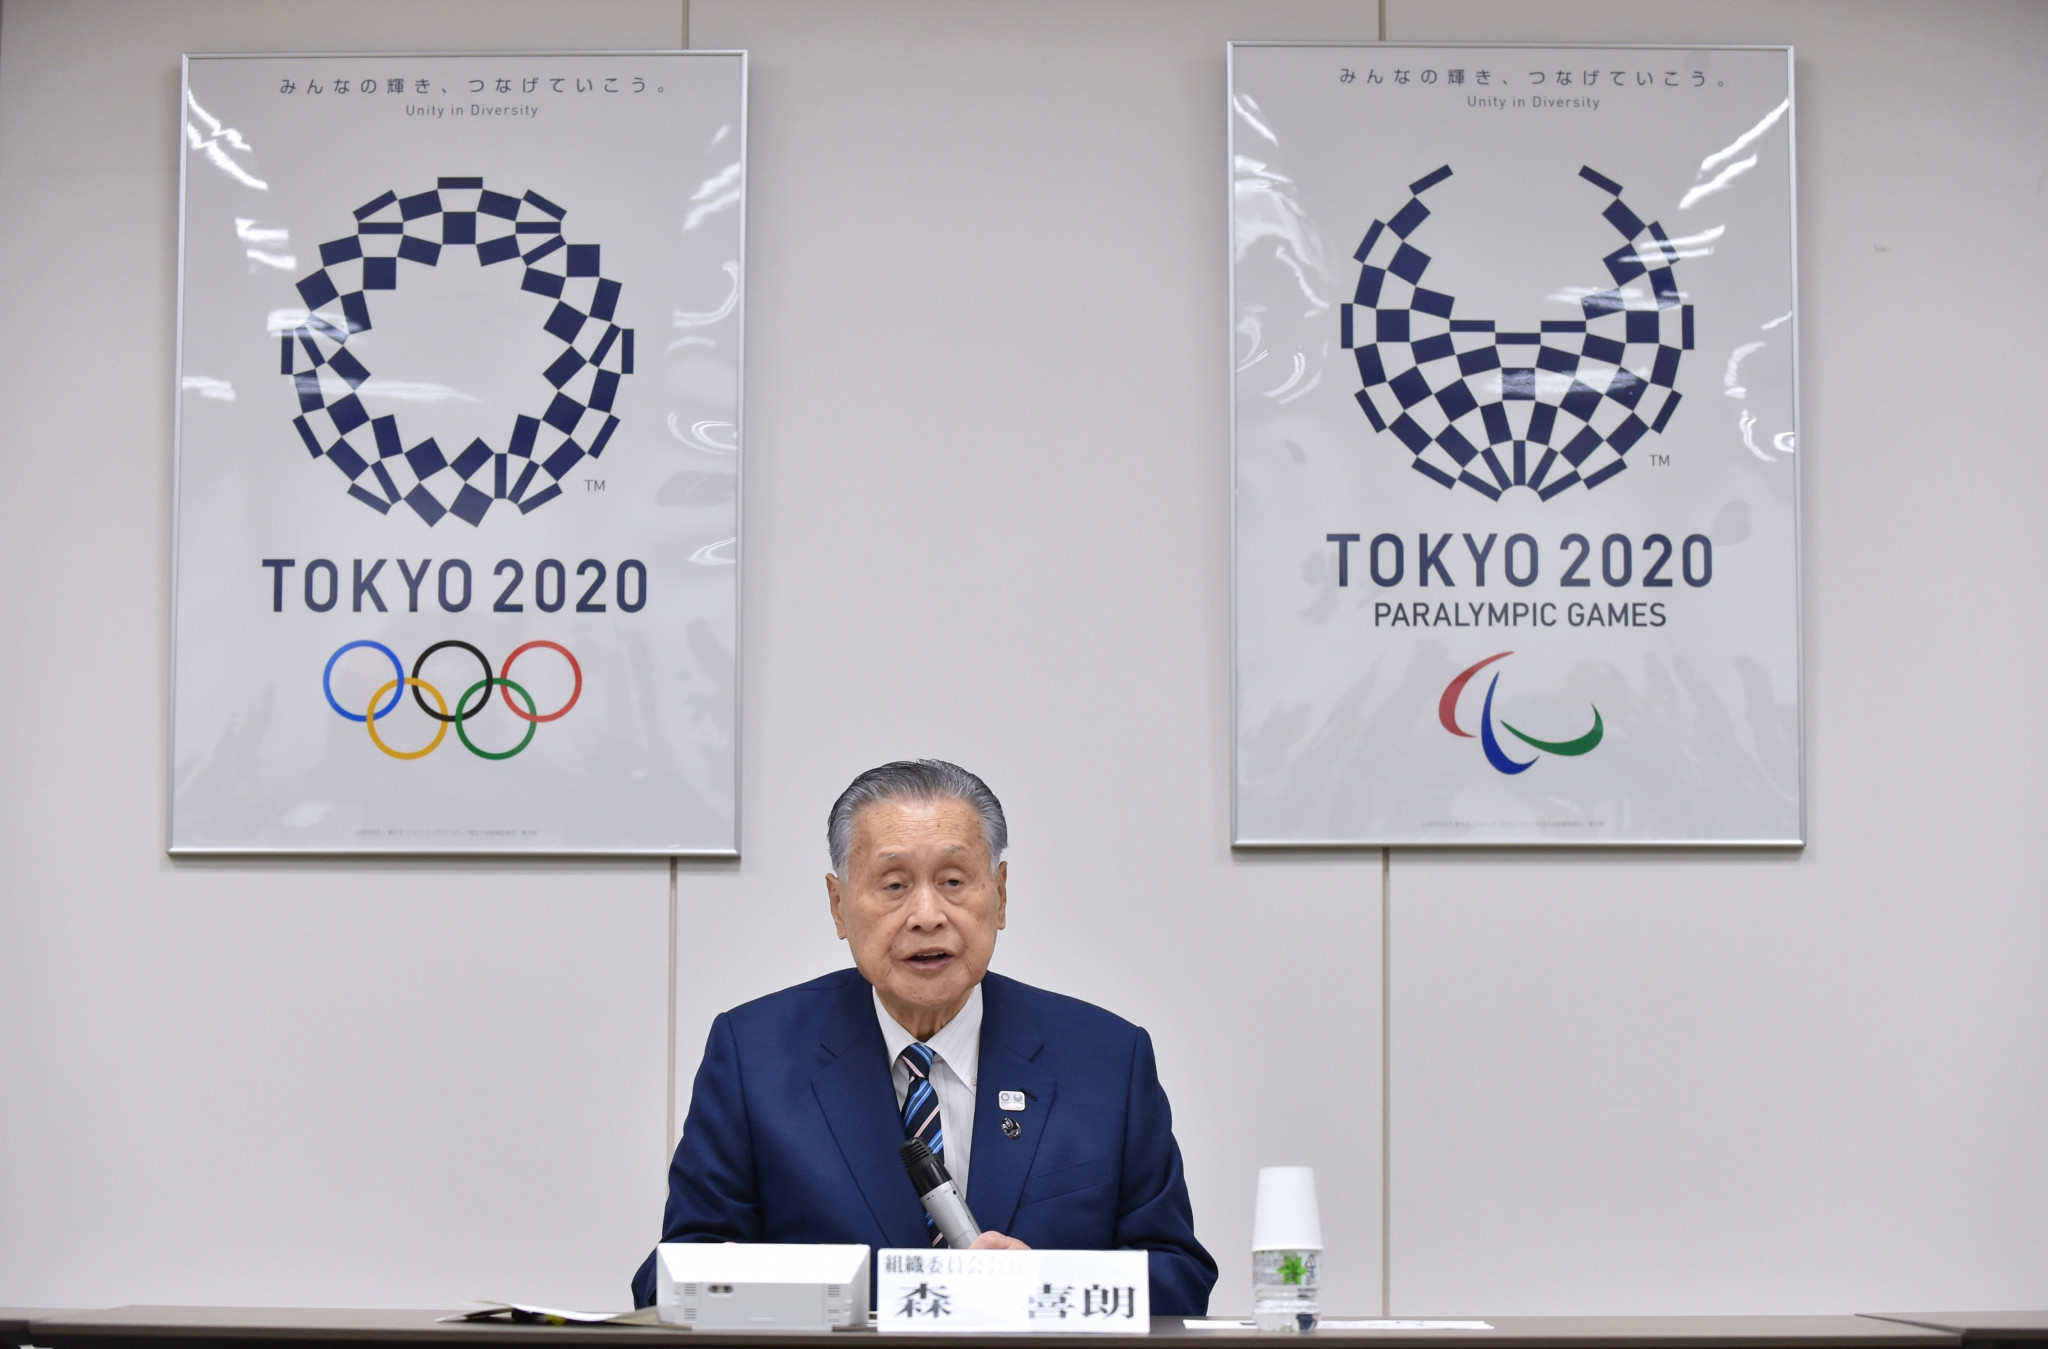 Yoshiro Mori announced the schedule alongside the IOC and HOC ©Getty Images